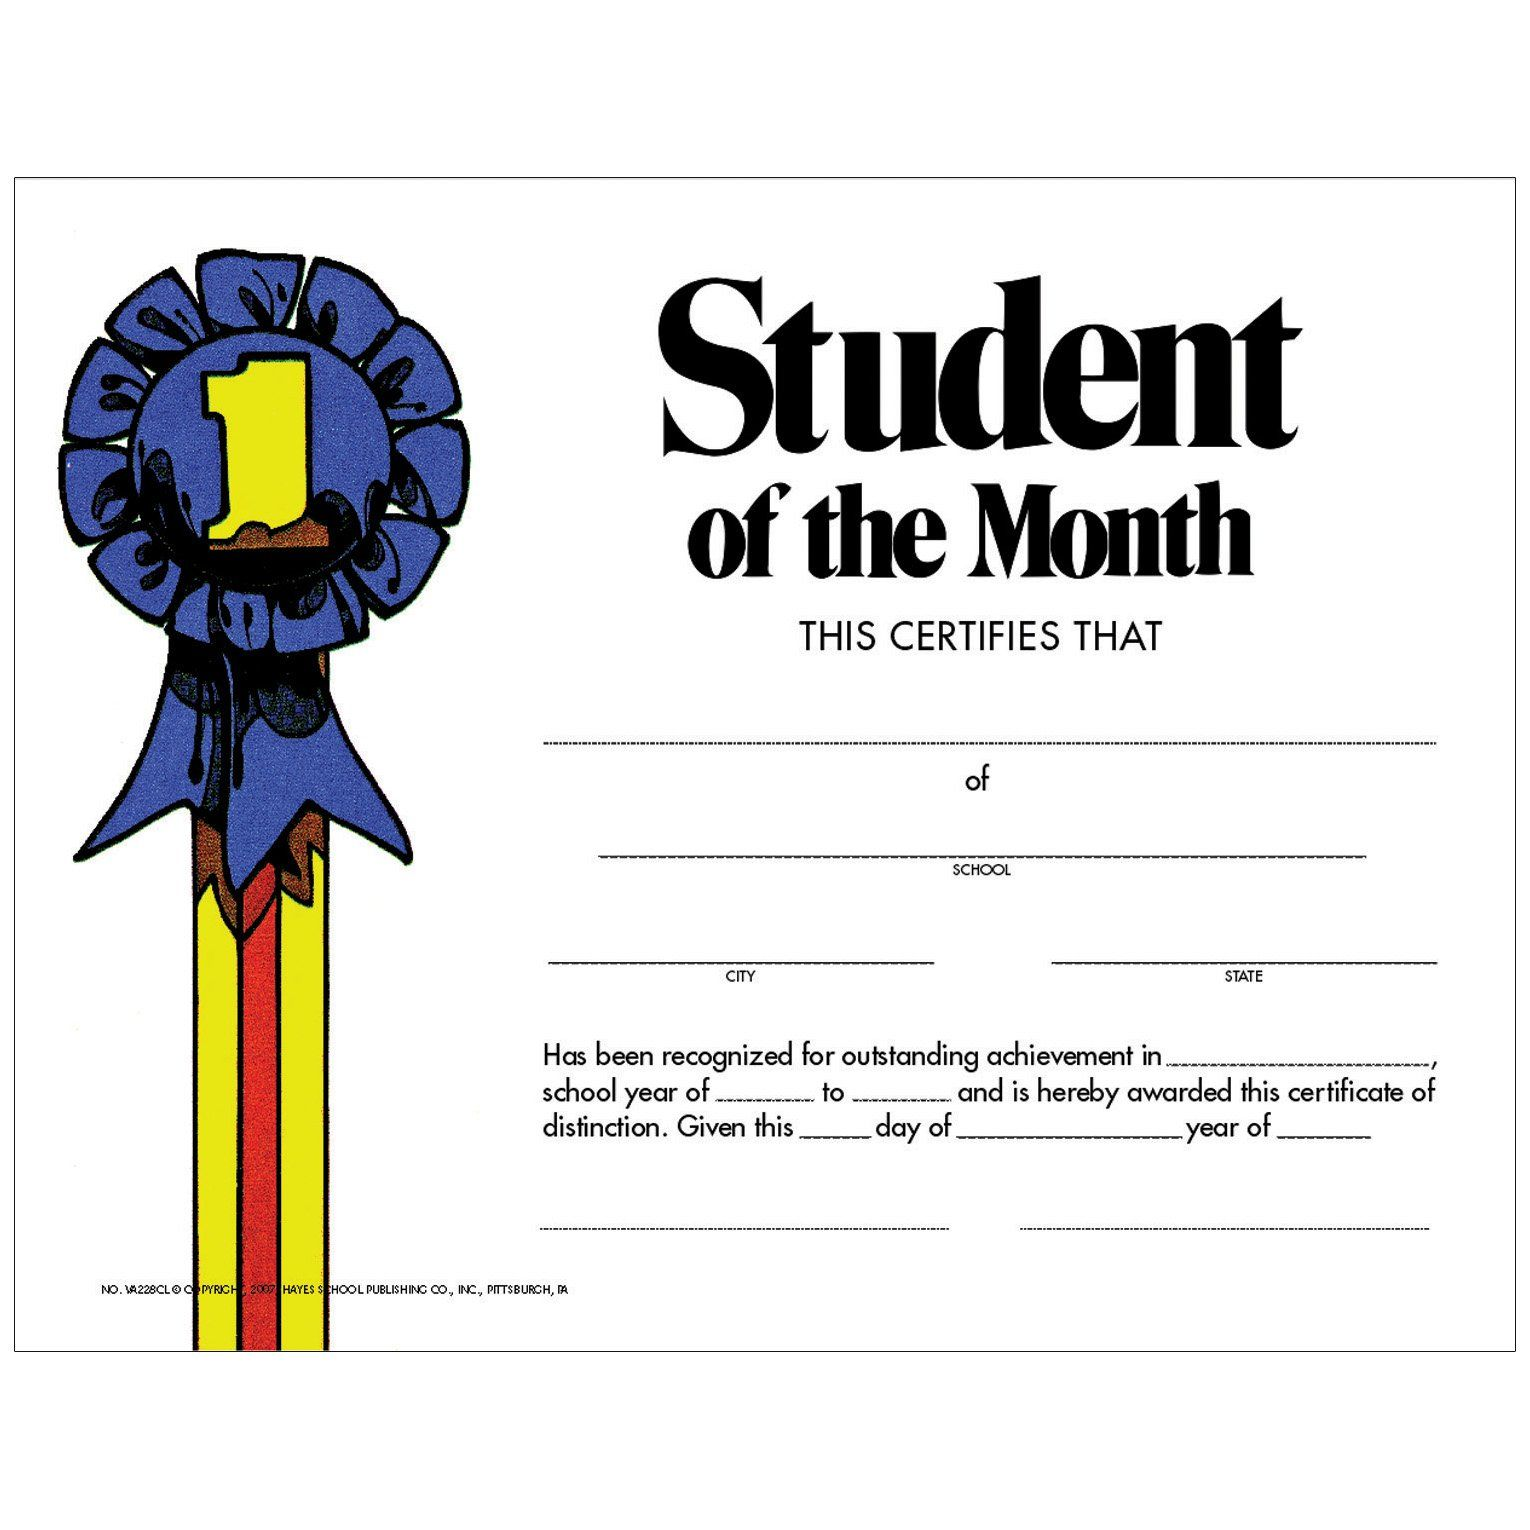 Student Of The Month 30pk Certificate In 2021 Student Of The Month Student Student Certificates Student of the month award template